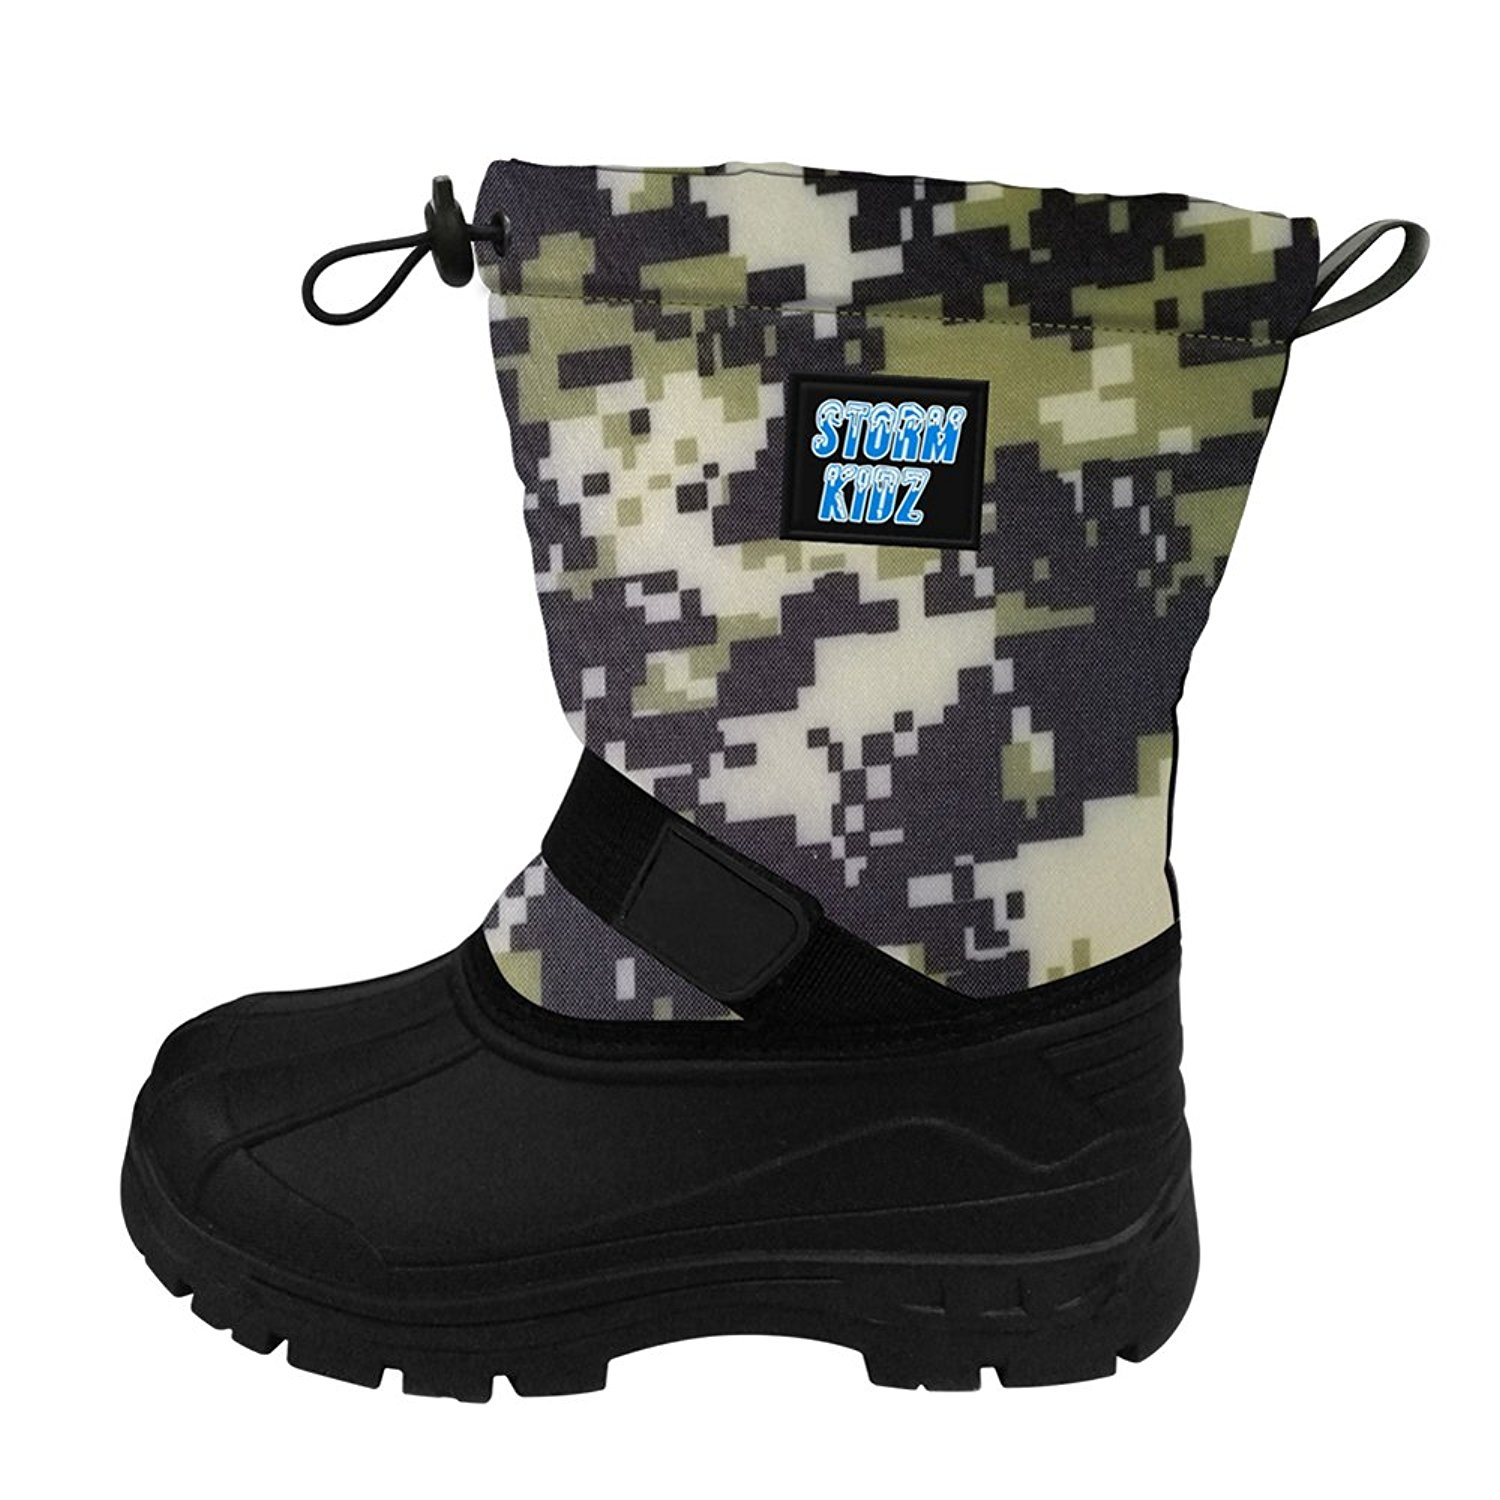 Storm Kidz Unisex Cold Weather Snow Boot (Toddler/Little Kid/Big Kid) MANY COLORS